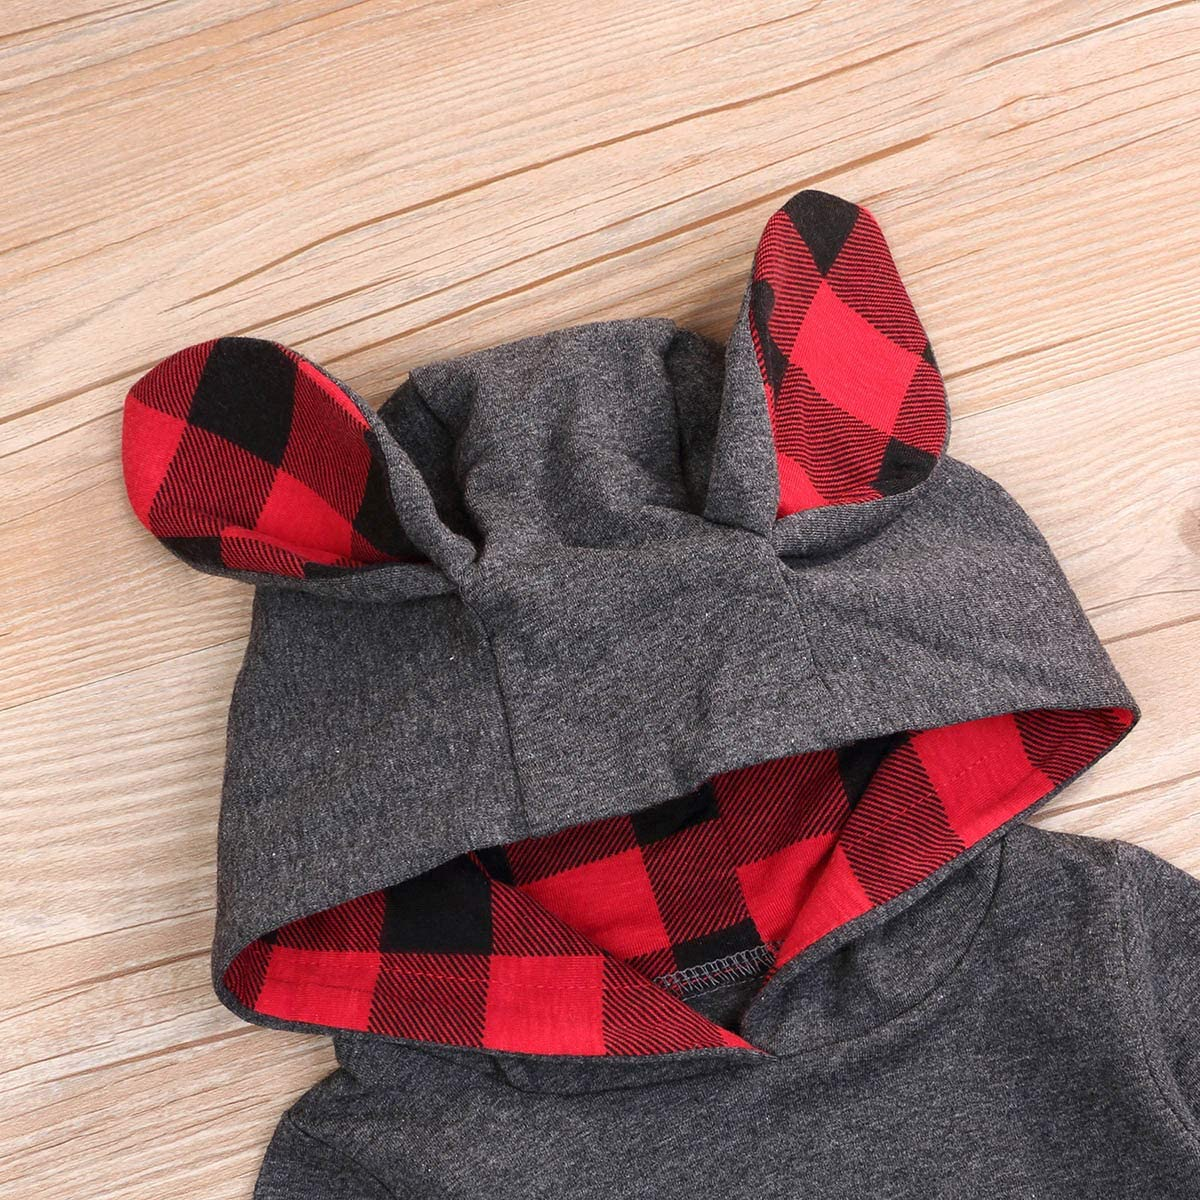 YOUNGER TREE Baby Boys Girls Hoodies Top Bunny Ears Romper Bodysuit Infant Jumpsuits Gray Outfit Red Plaid Clothes